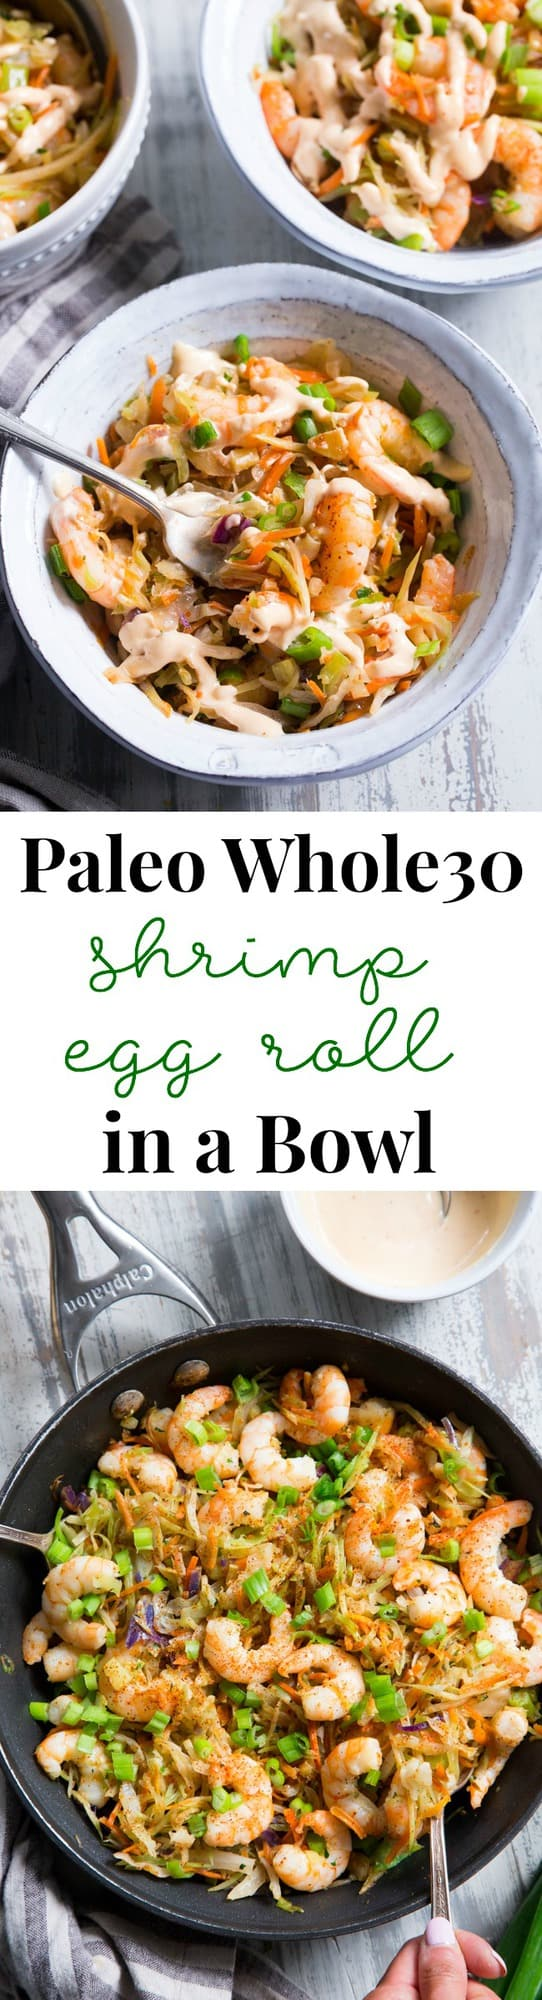 Quick and easy paleo shrimp egg roll in a bowl with a spicy aioli that's paleo, Whole30 compliant and keto friendly!  Great for easy weeknight dinners and the leftovers reheat perfectly for lunch the next day.